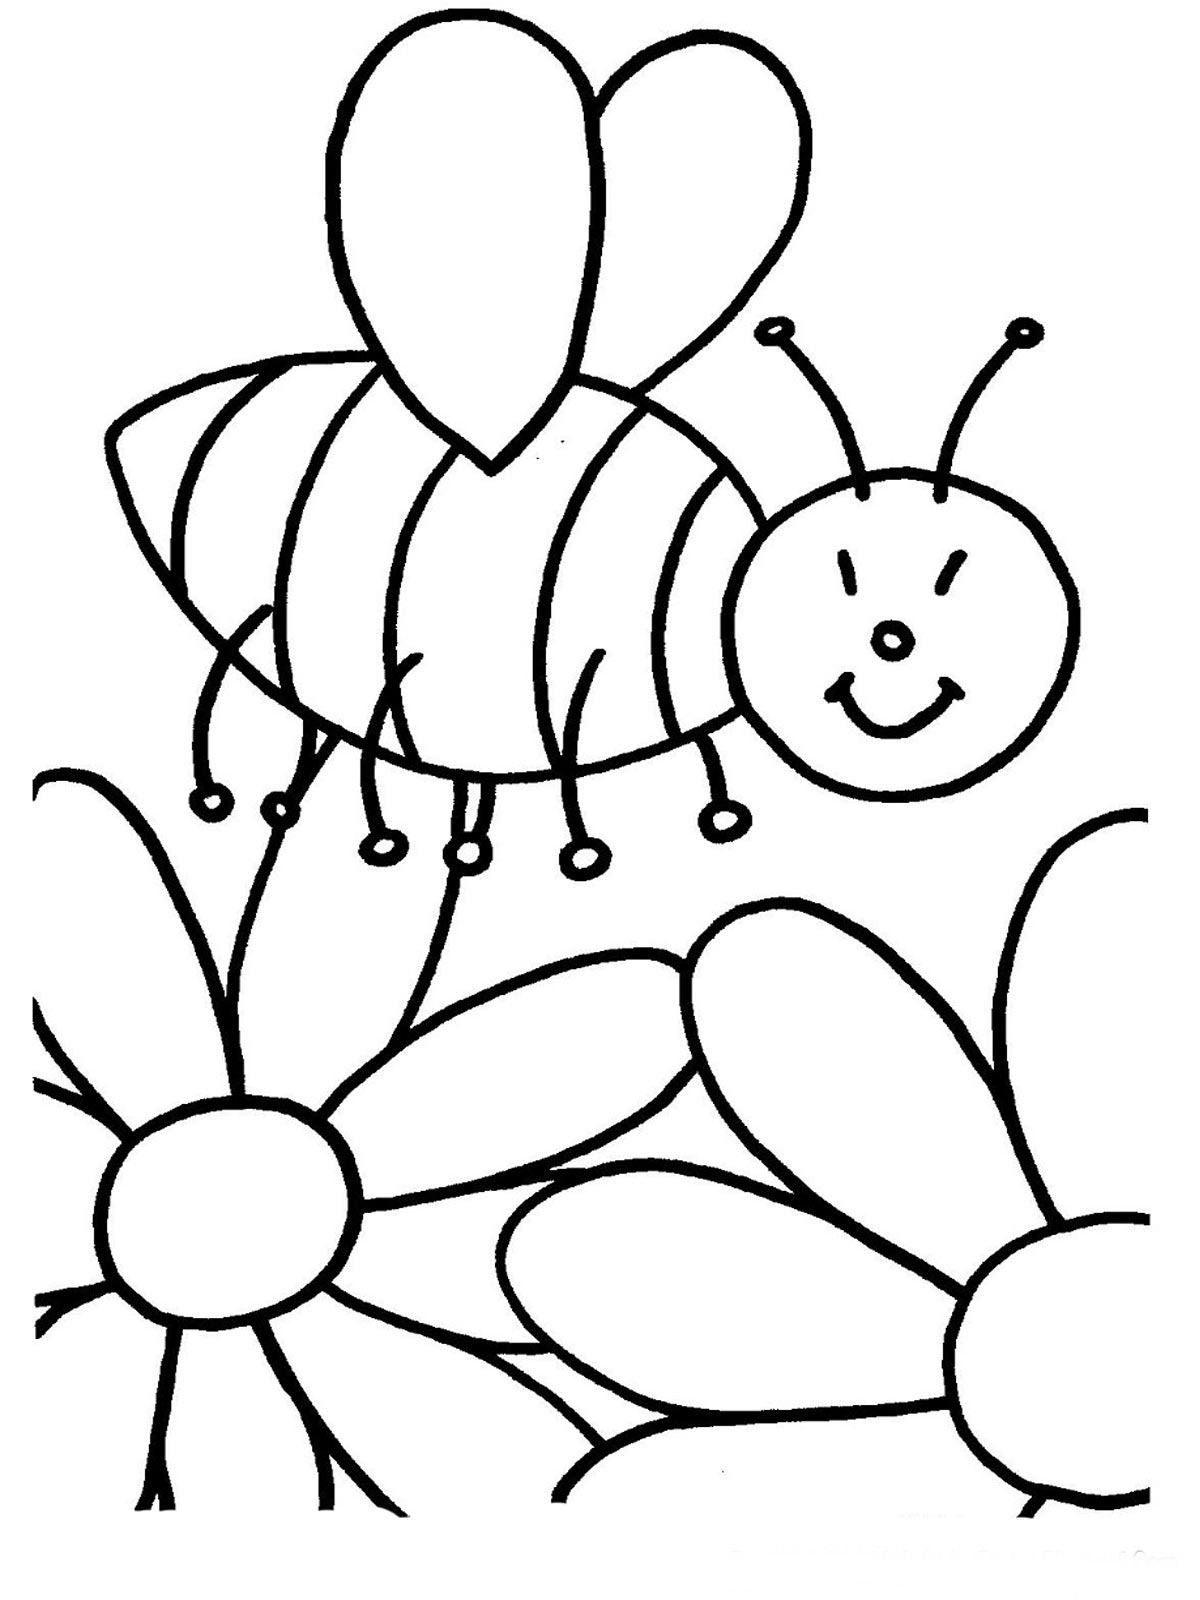 Free coloring pages spring flowers - Flower Wallpaper Bees Coloring Pages Realistic Realistic Coloring Pages